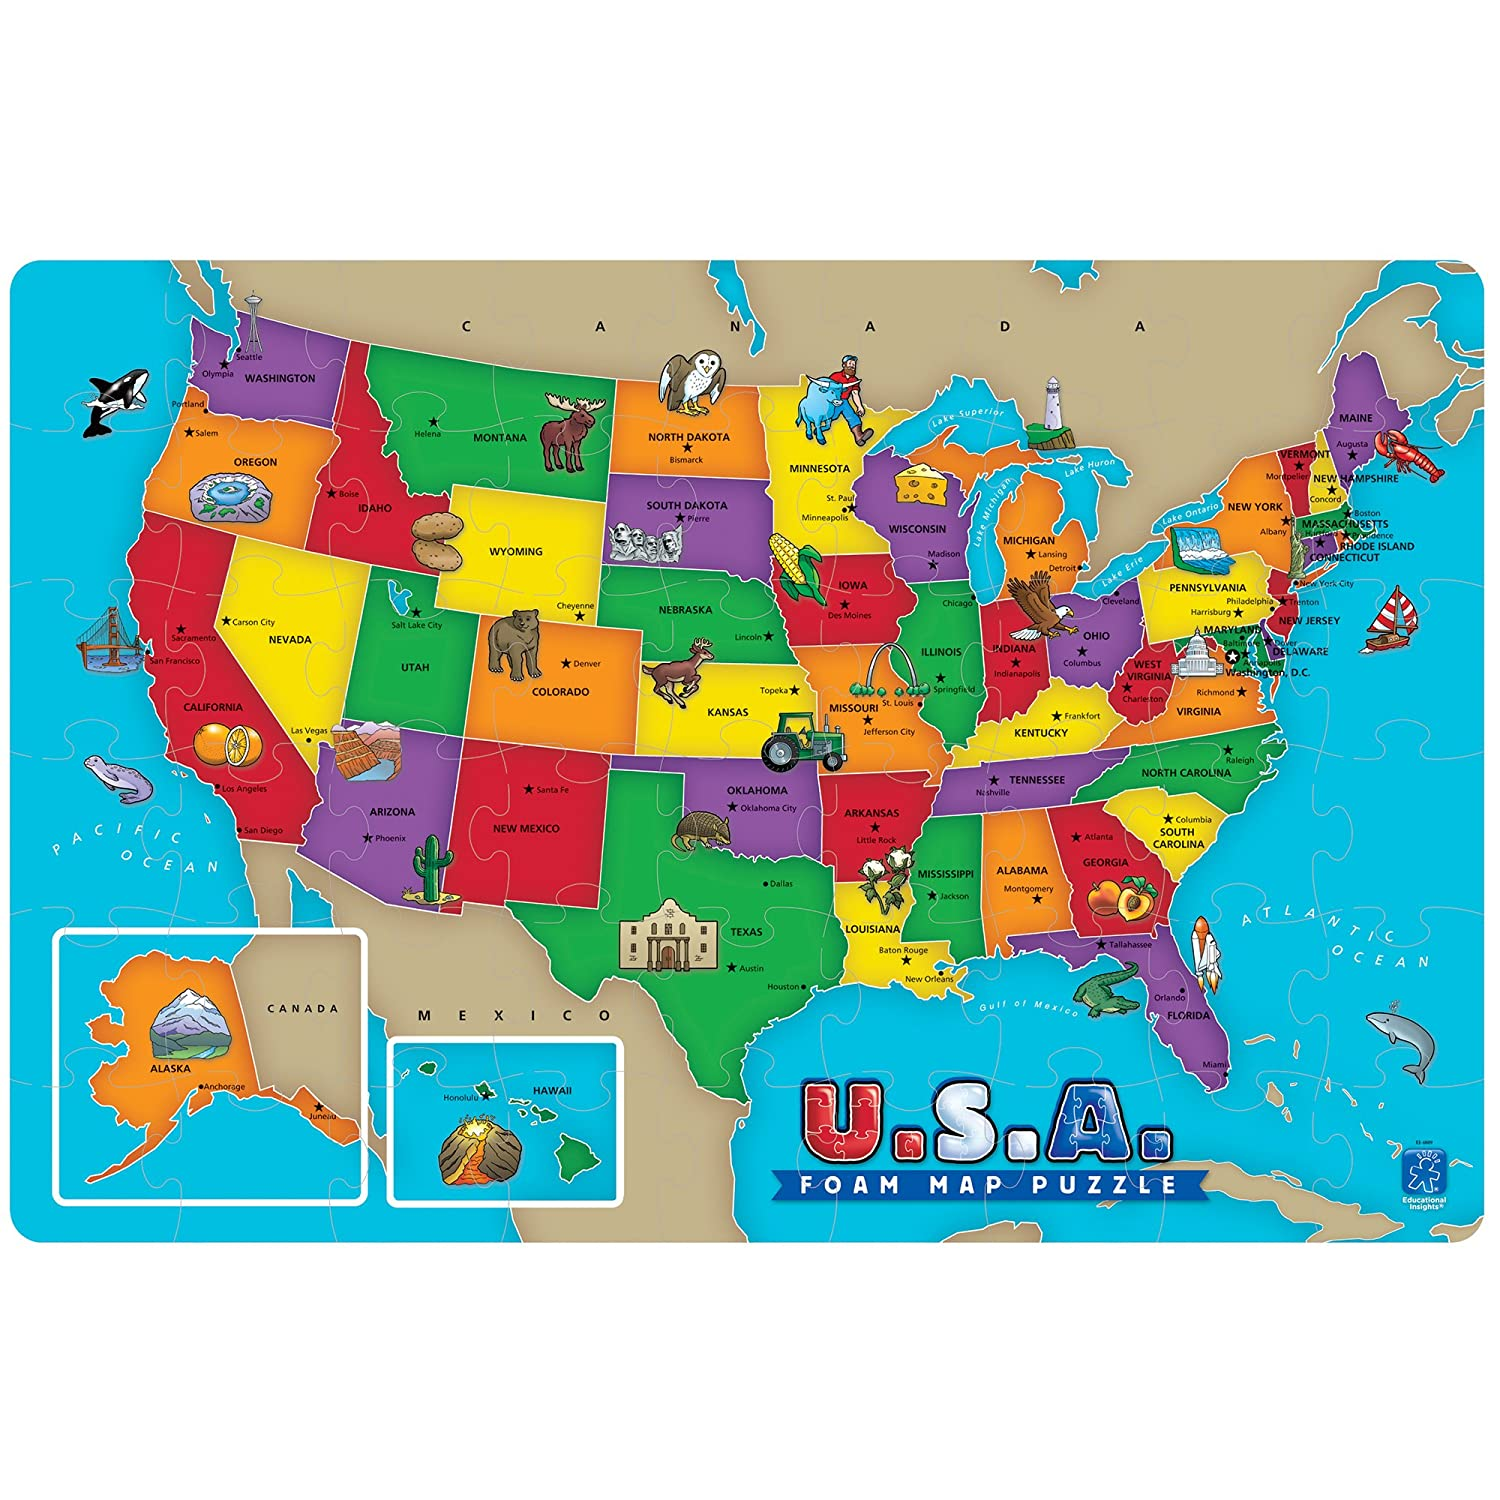 Amazoncom Piece USA Foam Map Puzzle Toys Games - States map of the united states